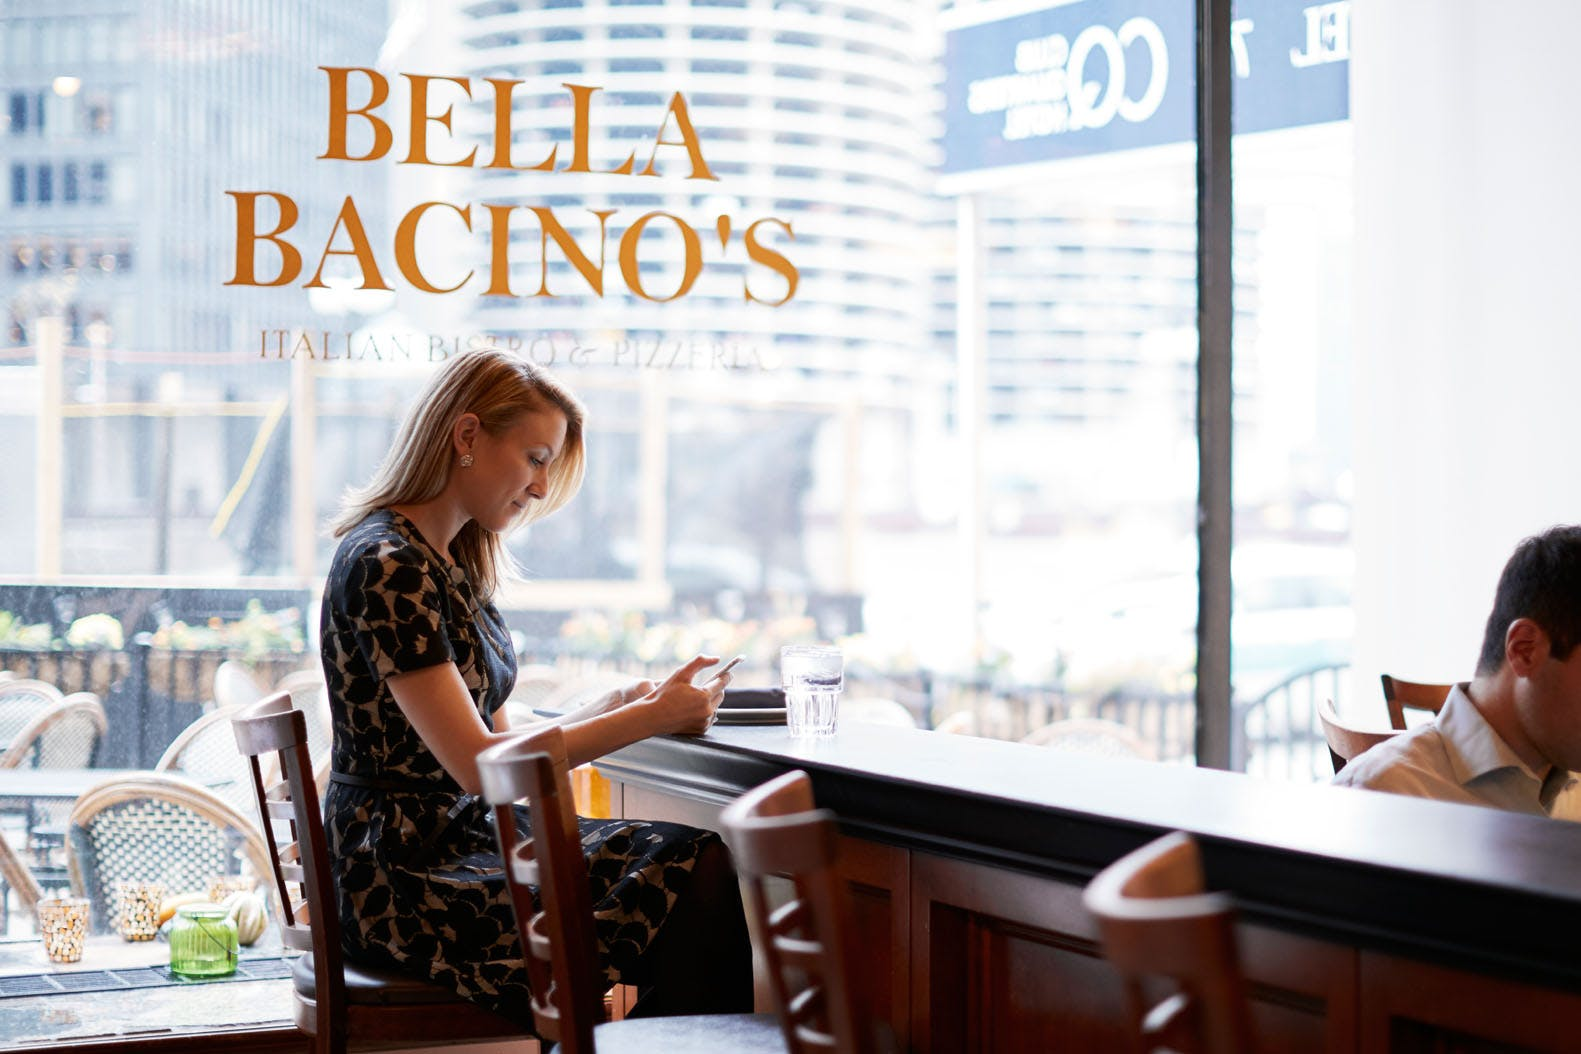 Bella Bacino's Restaurant at Club Quarters Hotel, Wacker at Michigan, Chicago